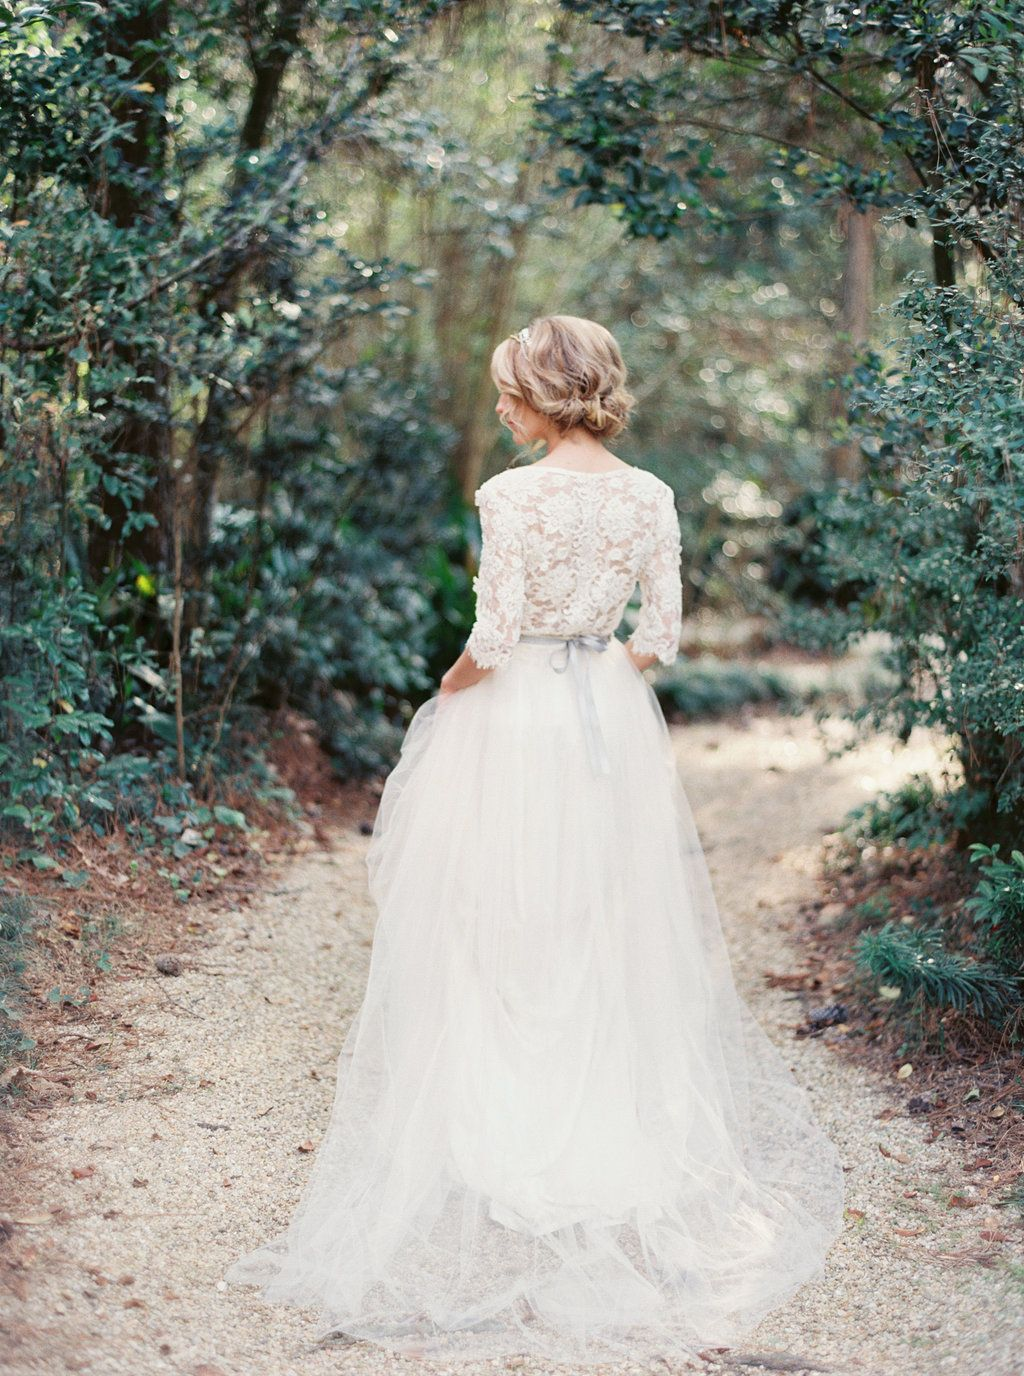 Lace wedding dress by emily riggs image by erich mcvey bride